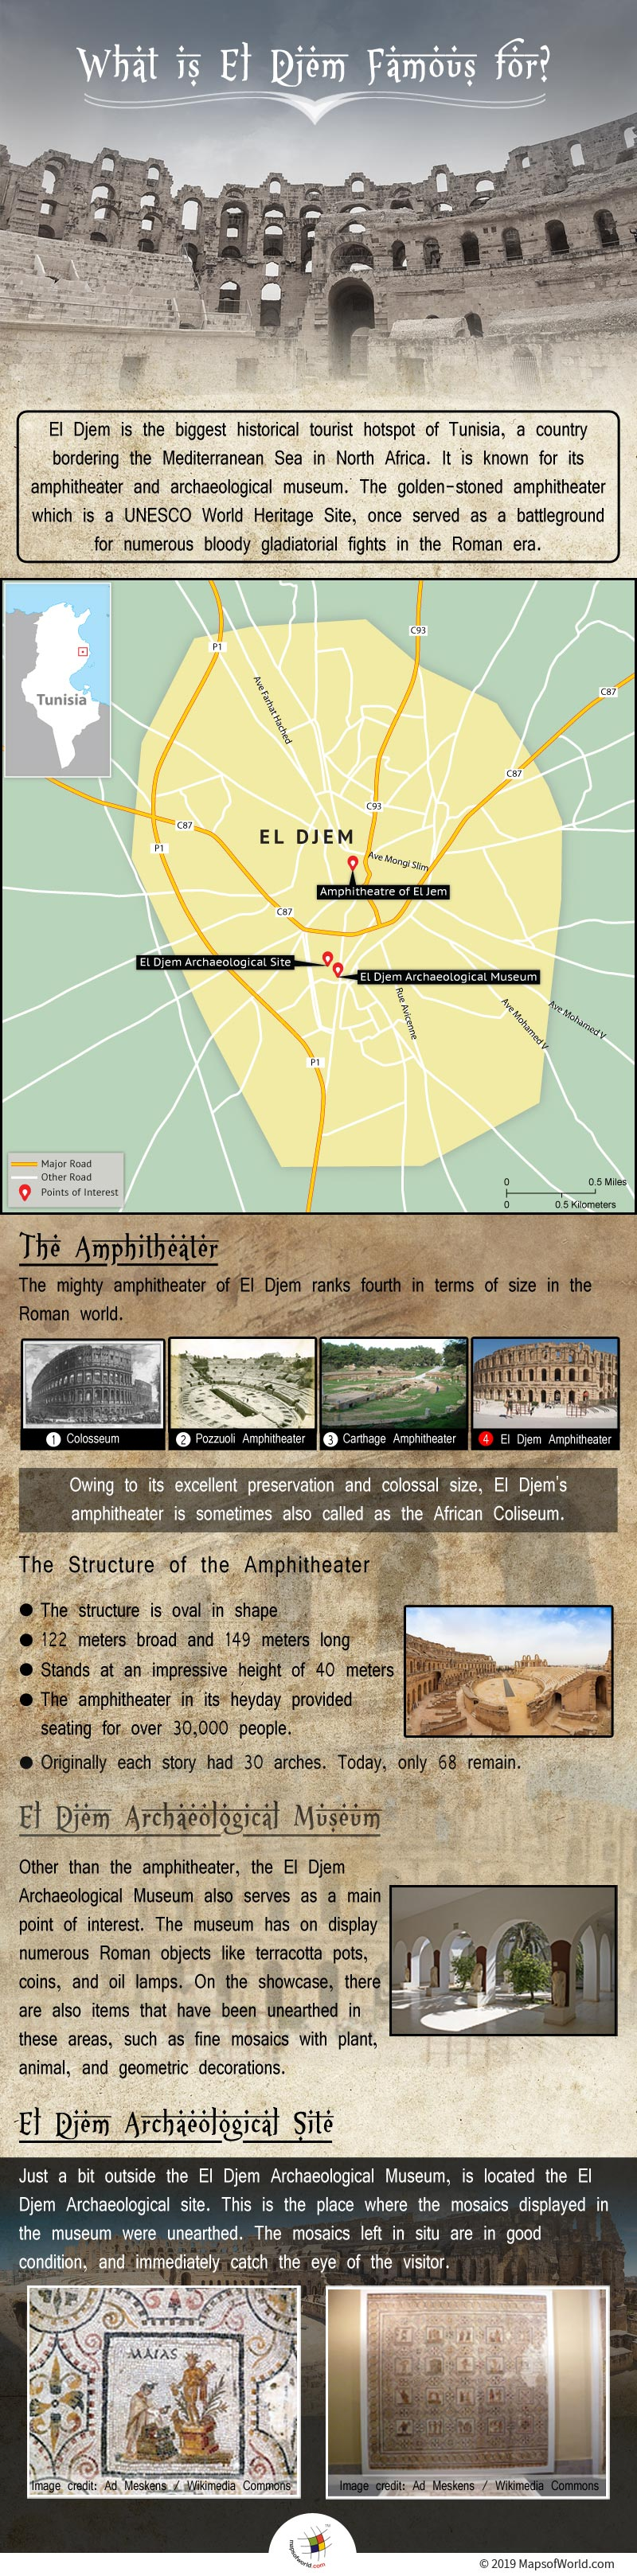 Infographic Giving Details on El Djem Famous Sites